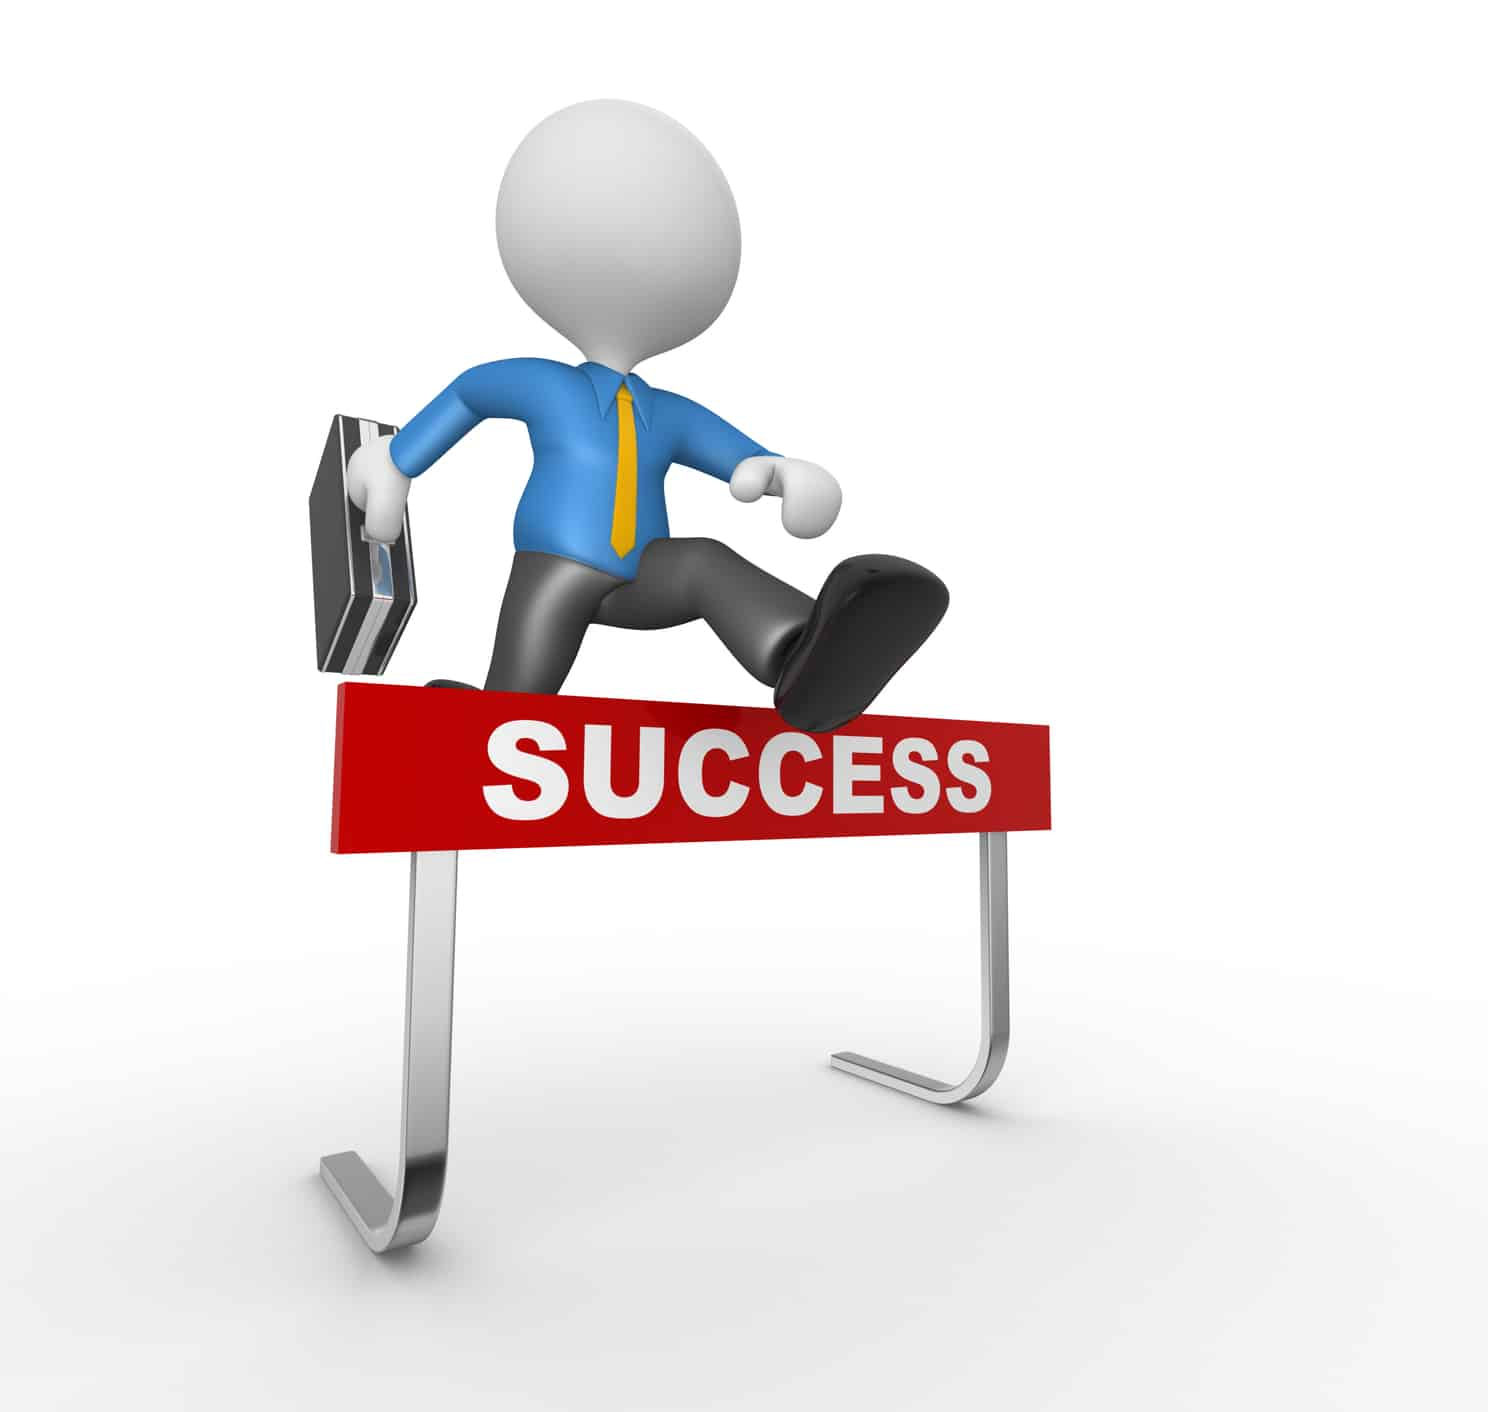 Sales Motivation Video: Whose Goals Are You Achieving?